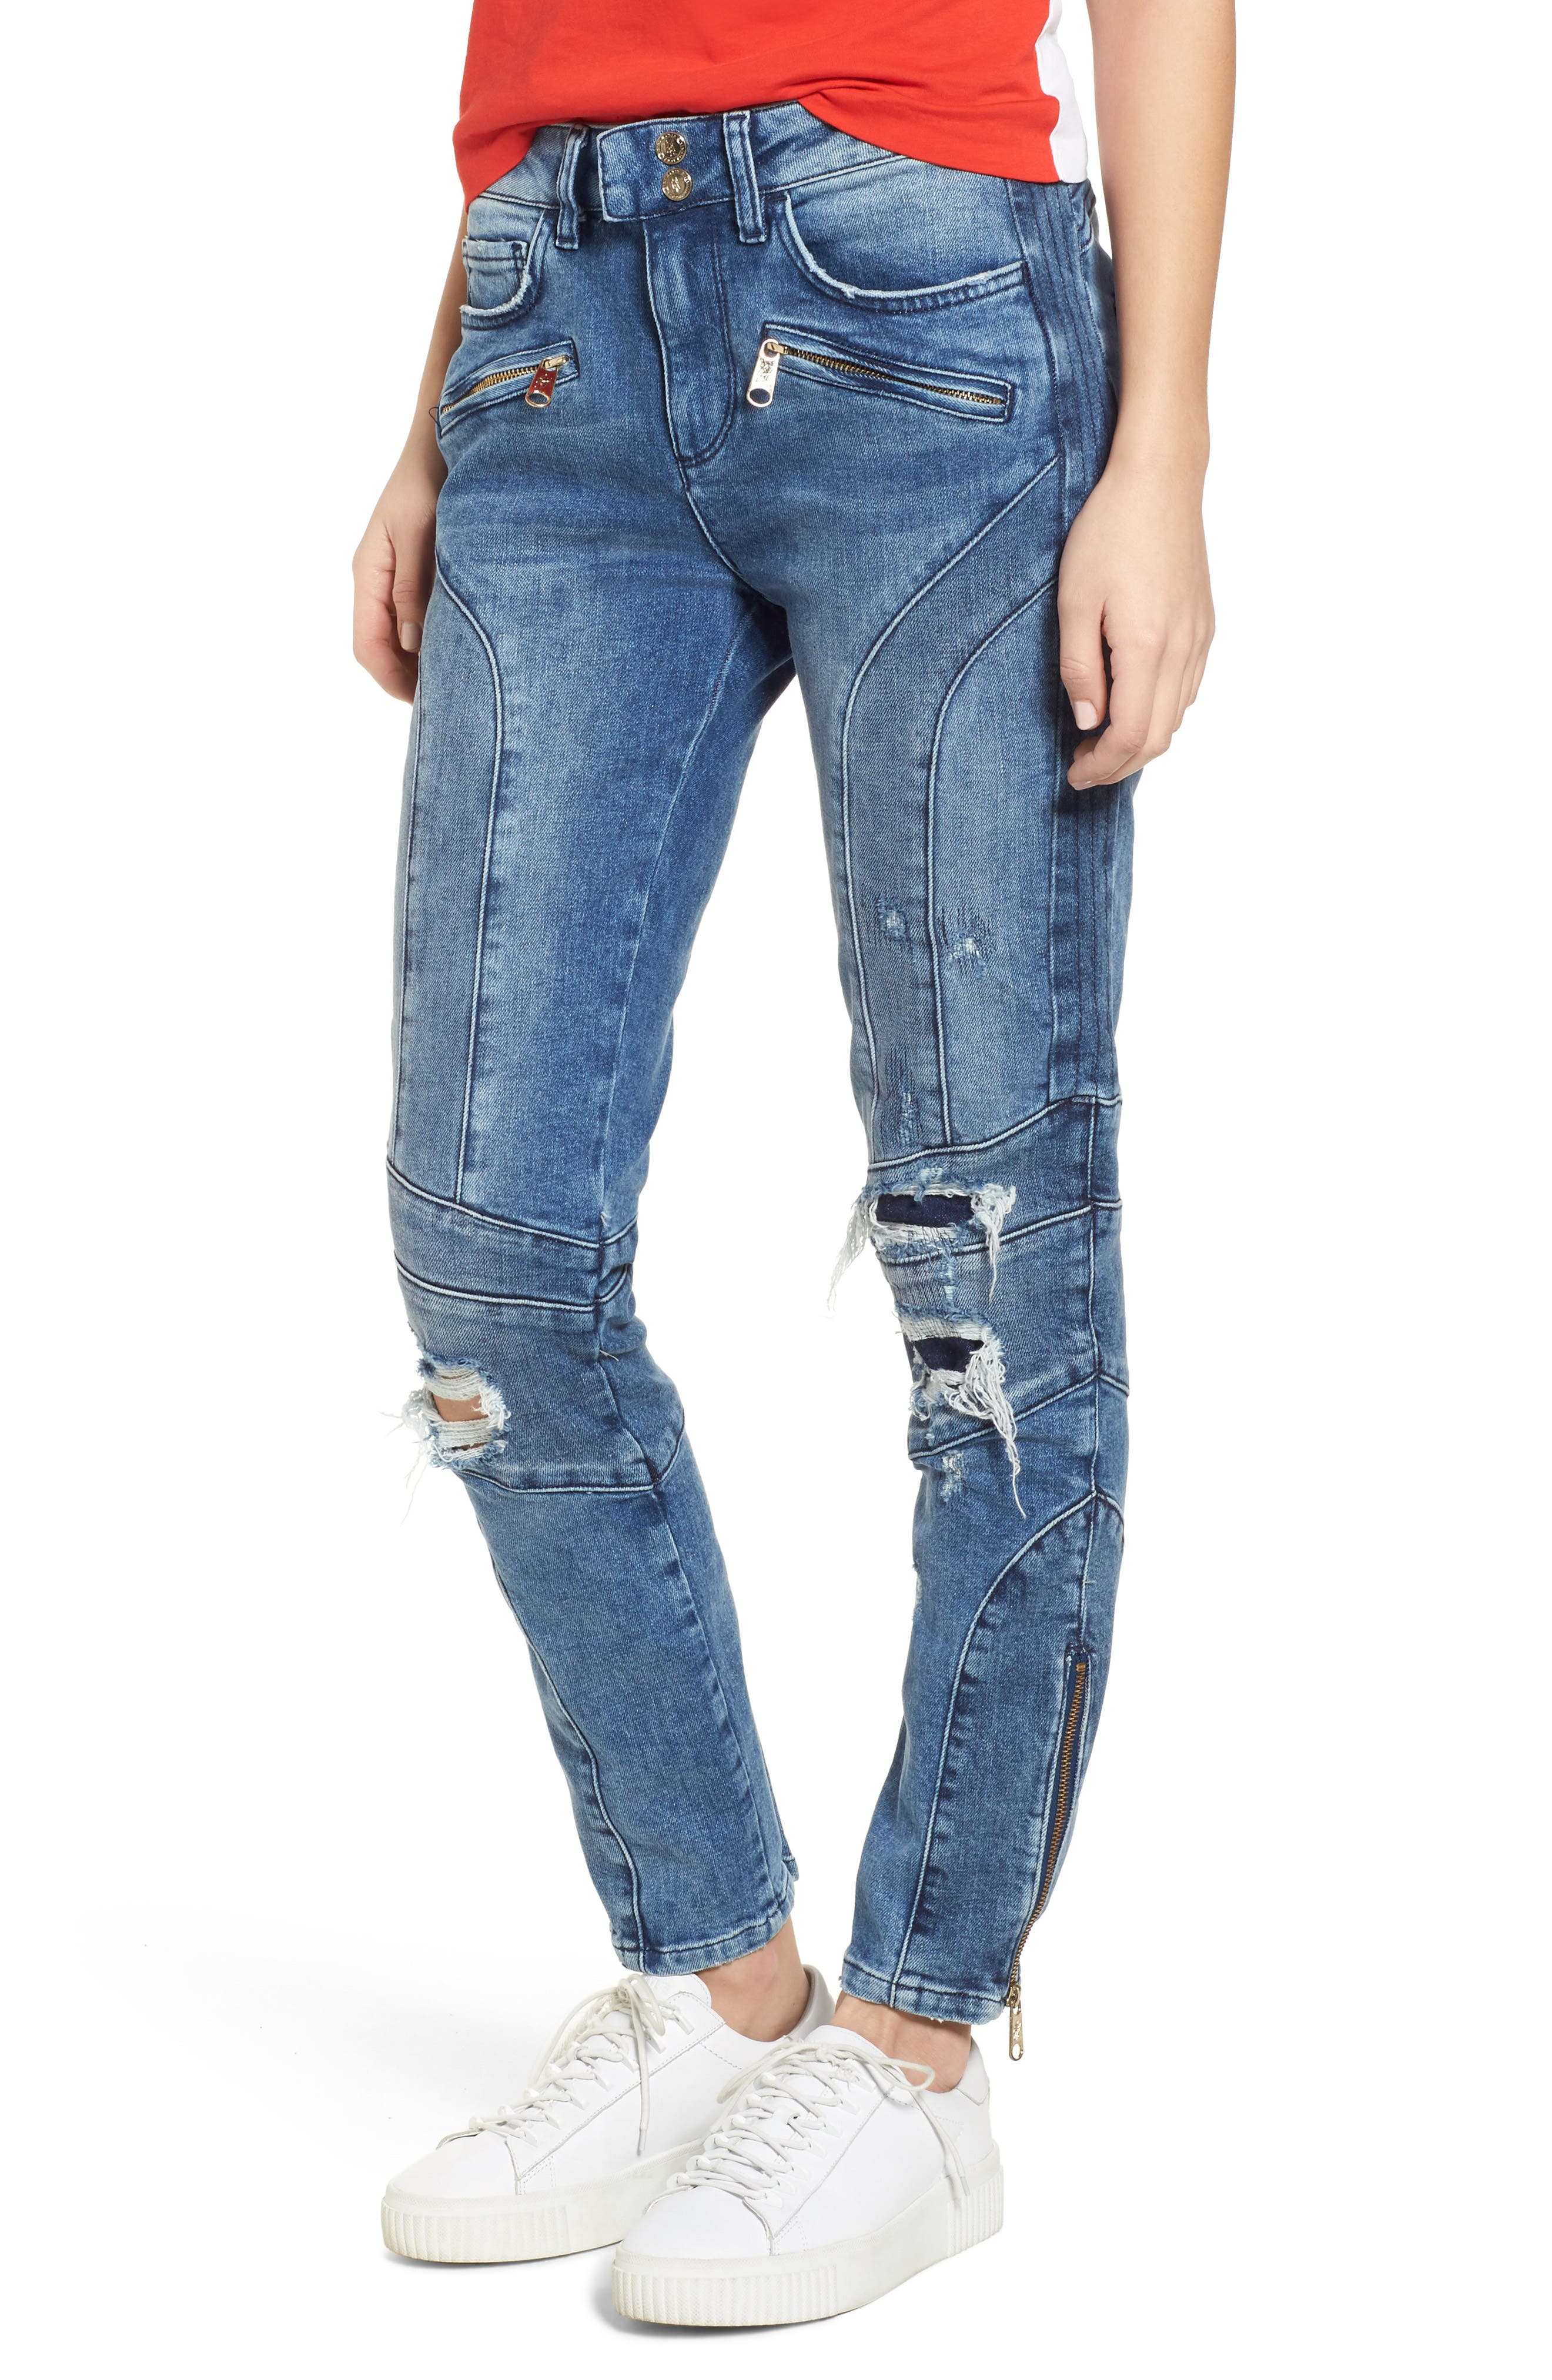 x Gigi Hadid Speed Distressed Ankle Zip Jeans,                             Main thumbnail 1, color,                             400